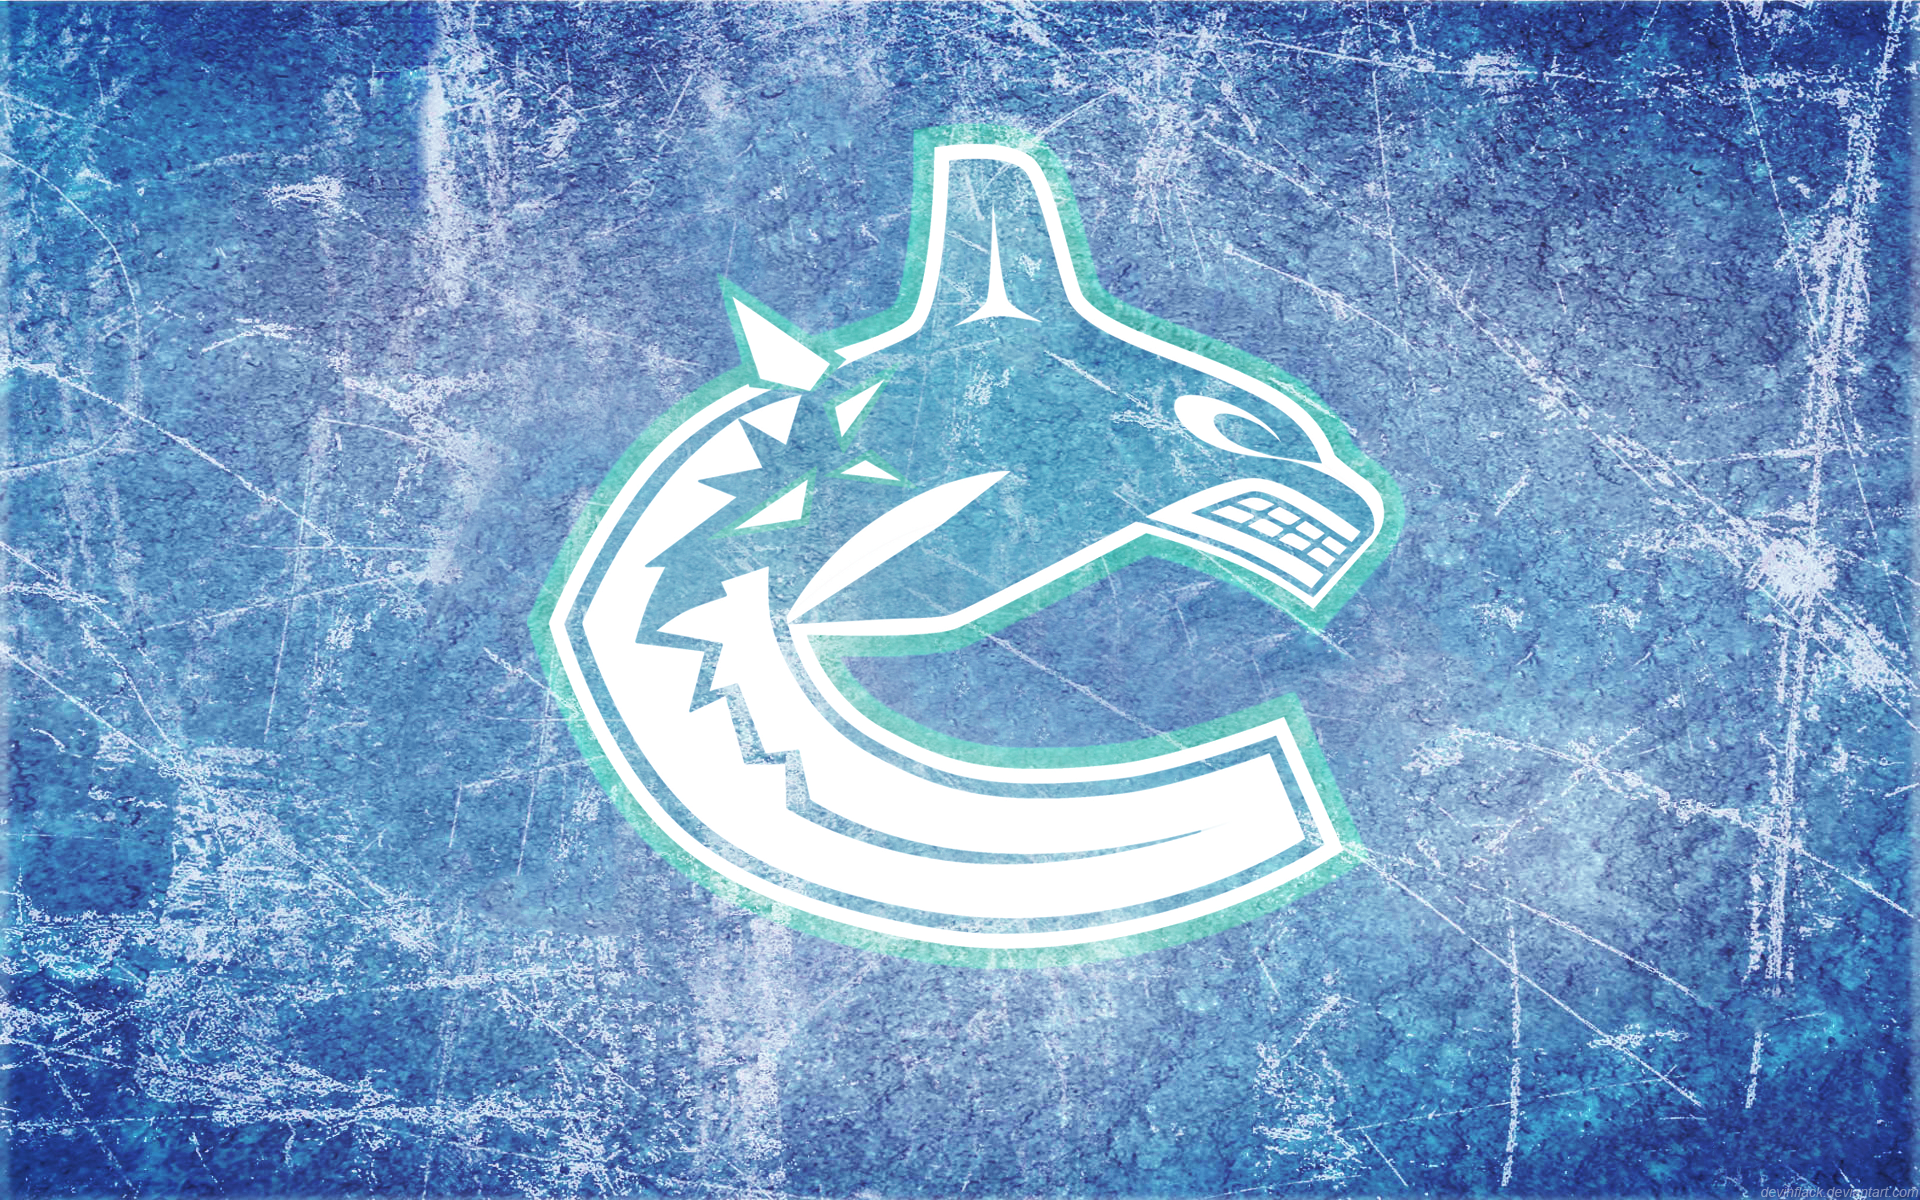 Vancouver Canucks Wallpaper 2011 wallpaper   220455 1920x1200